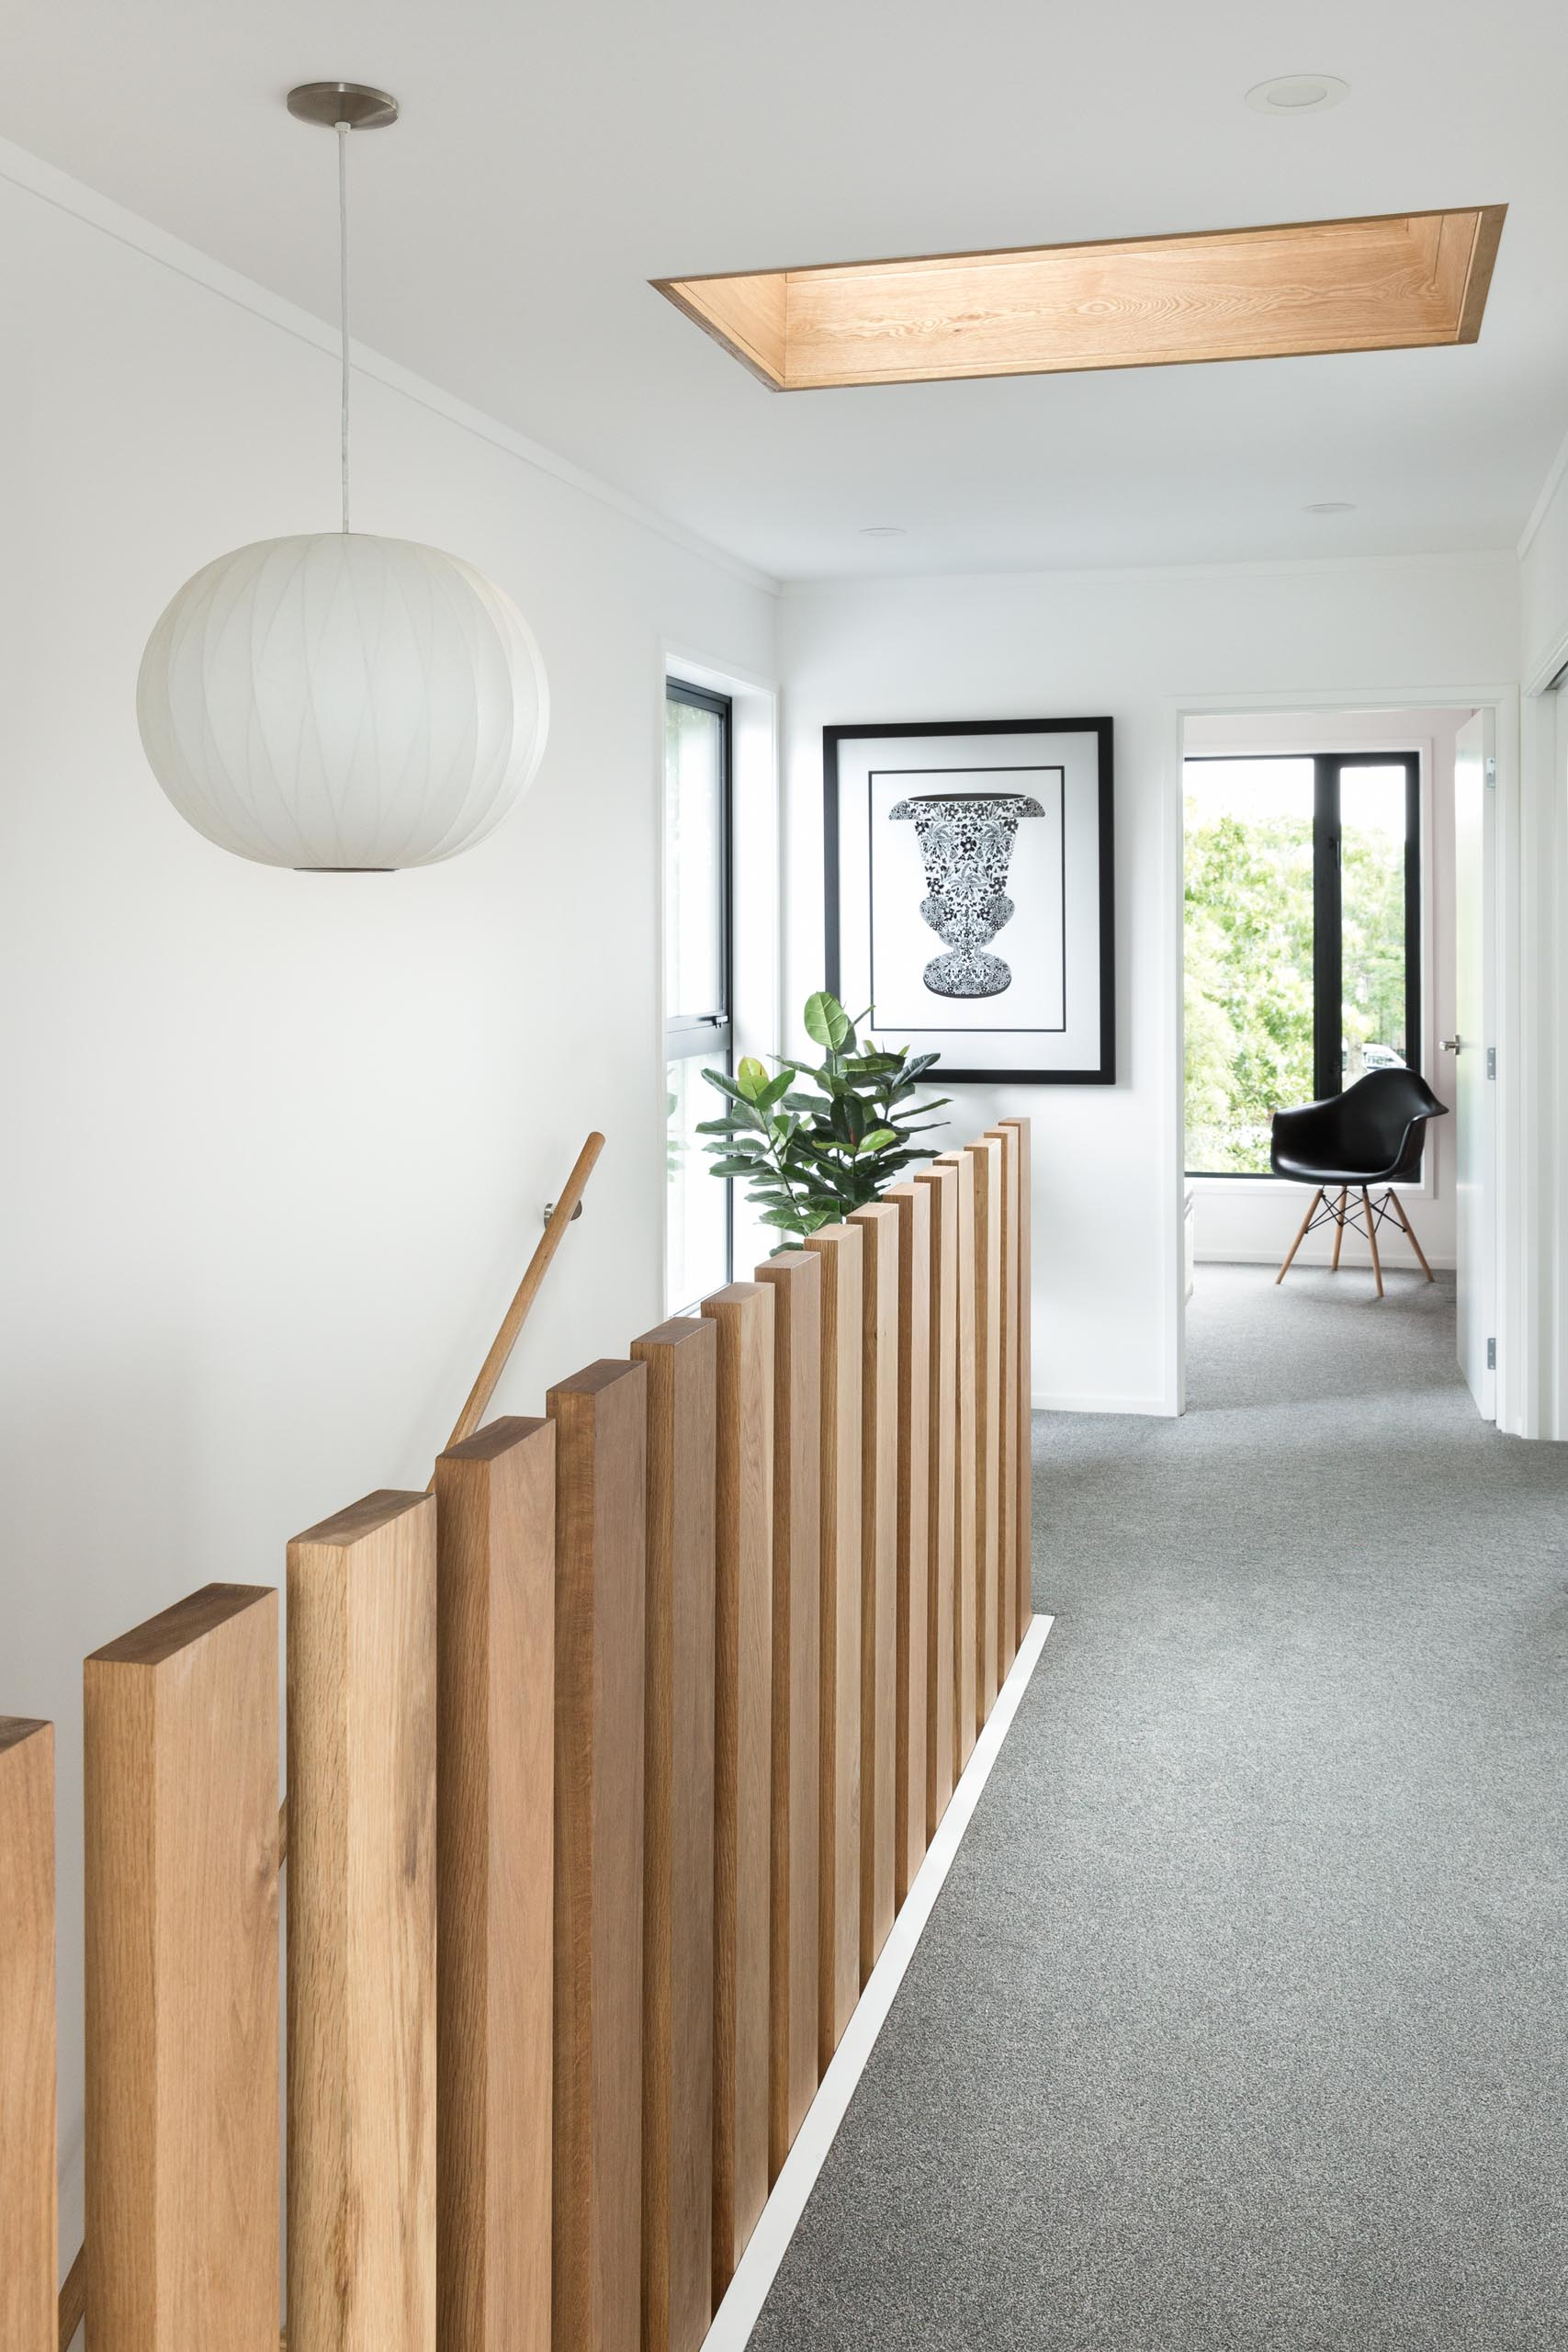 This modern home includes stair balusters are engineered to float above the landing without being tied together. Beyond is a glimpse of the oak tree that the design was inspired by, while the ceiling also features a wood lined skylight adding extra natural light to the stairwell below.